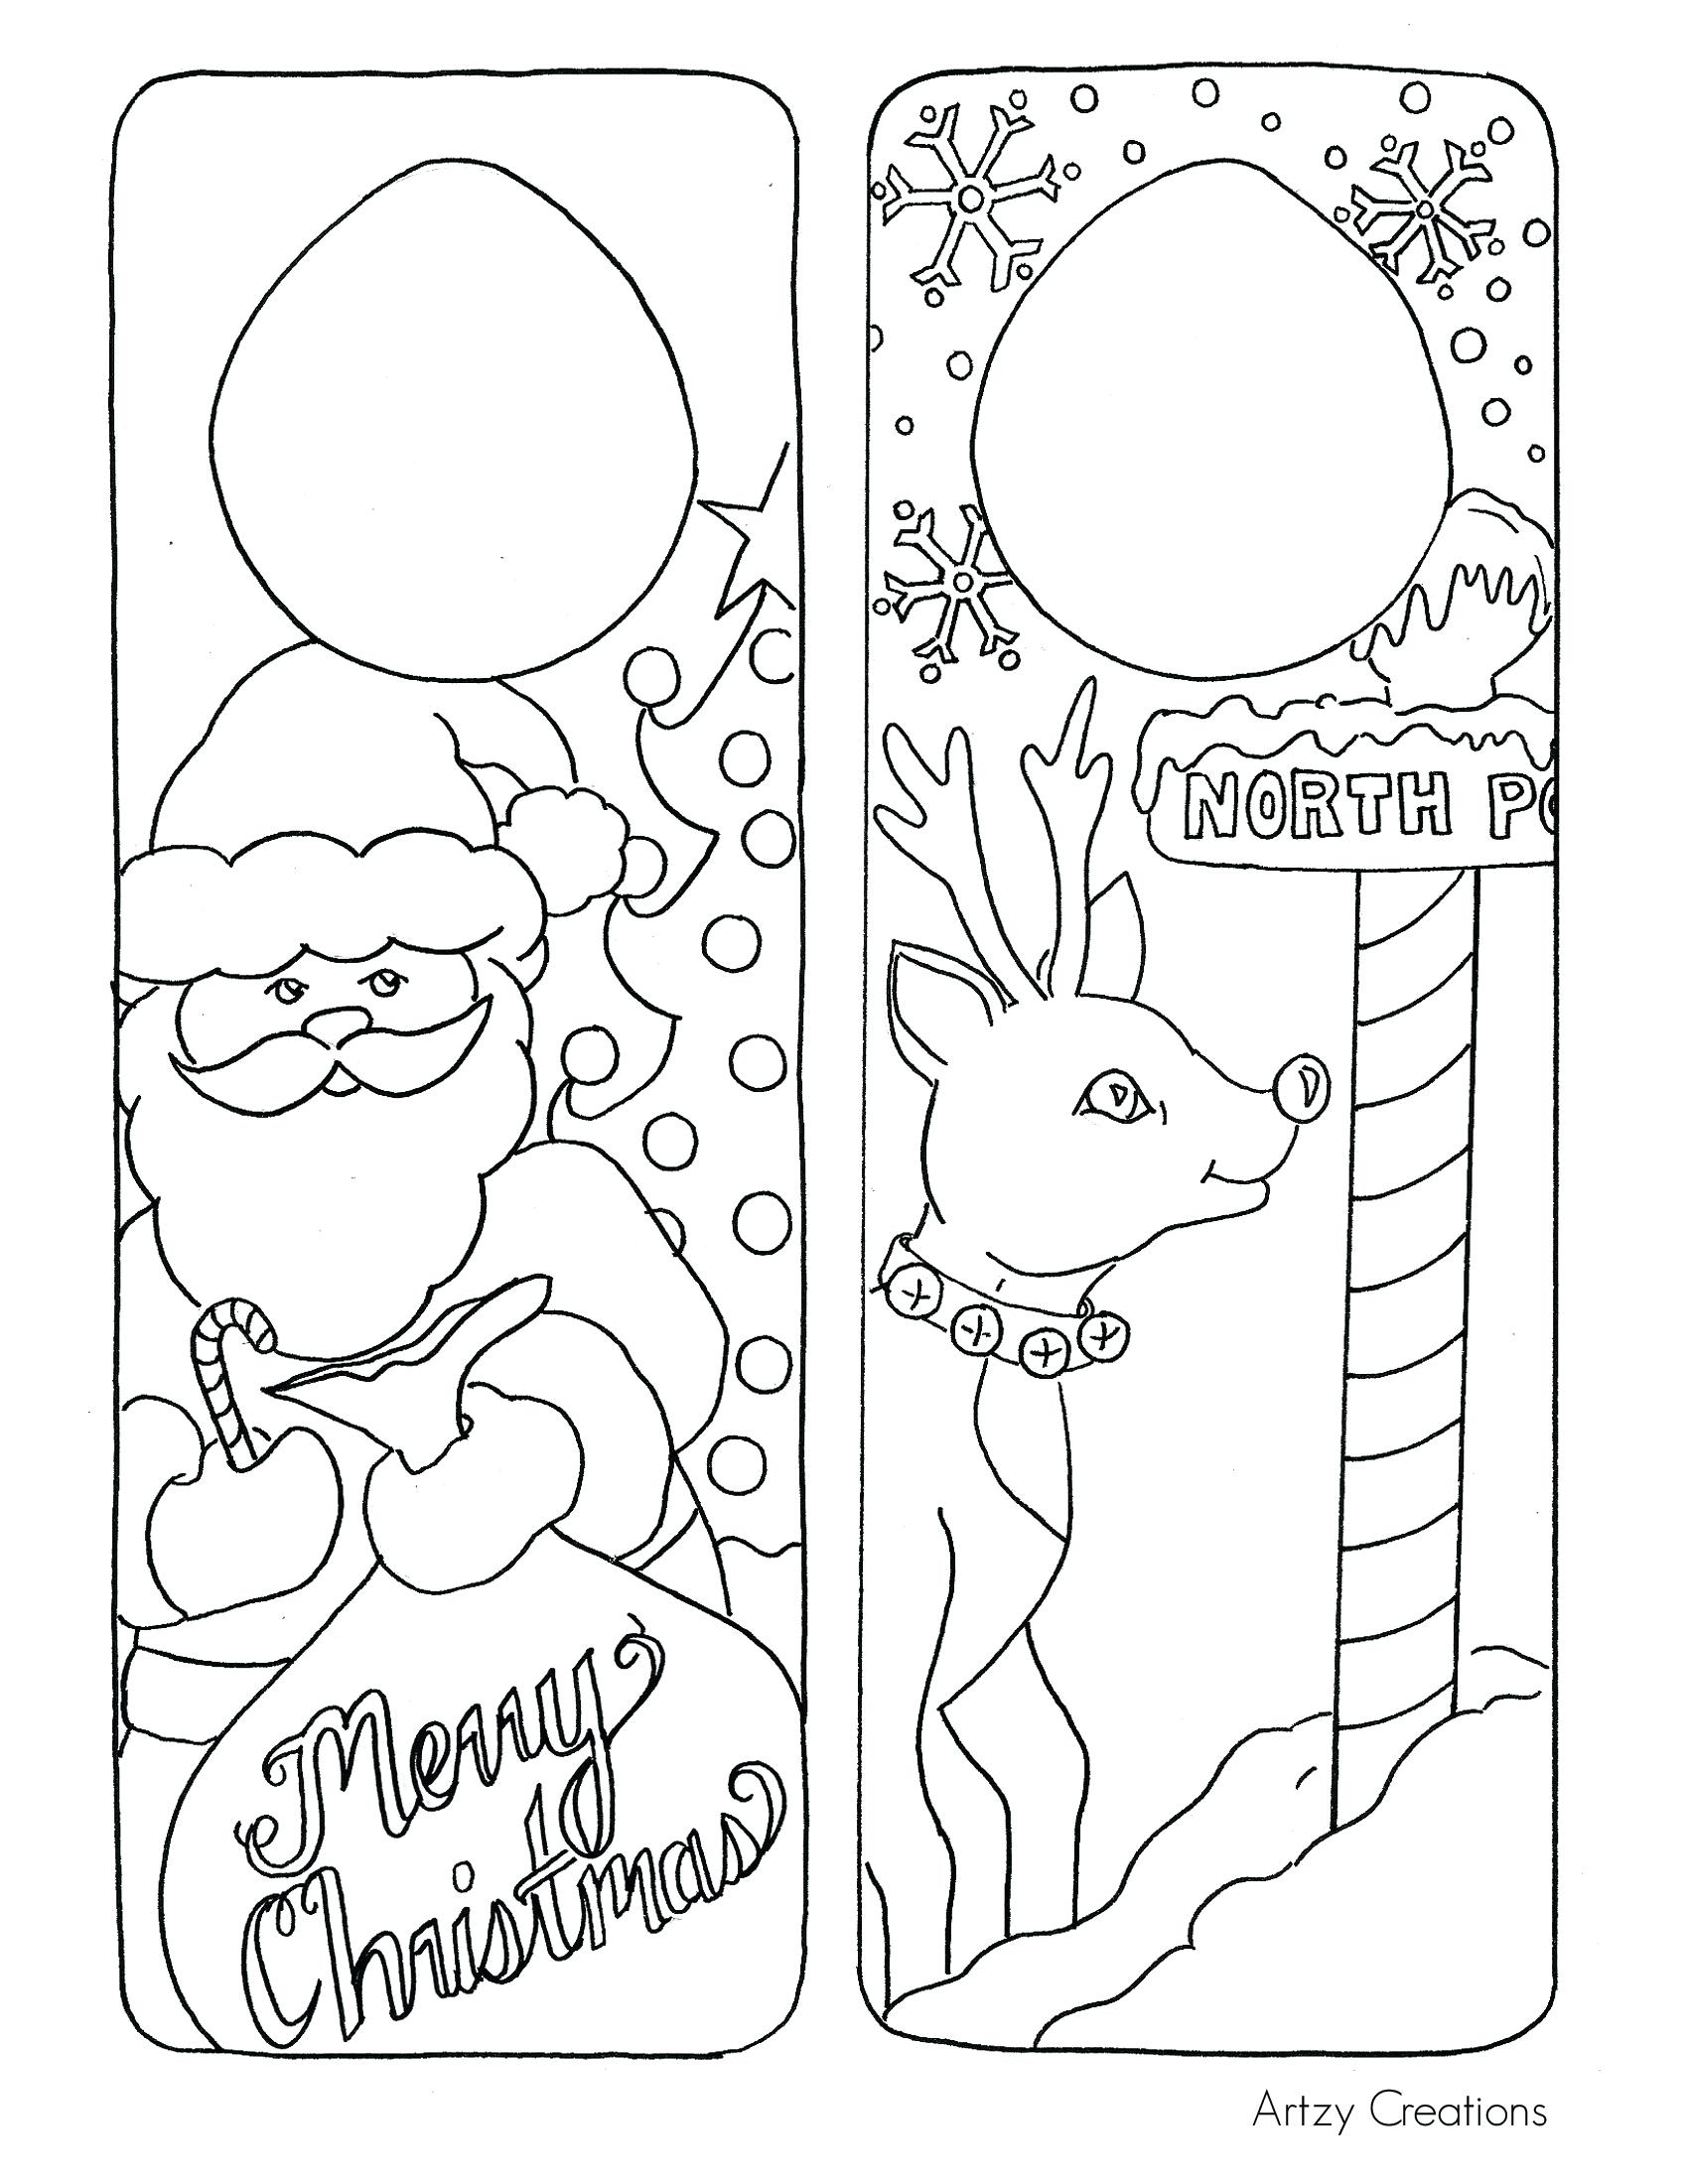 Printable Christmas Cards To Color.Christmas Card Coloring Pages At Getdrawings Com Free For